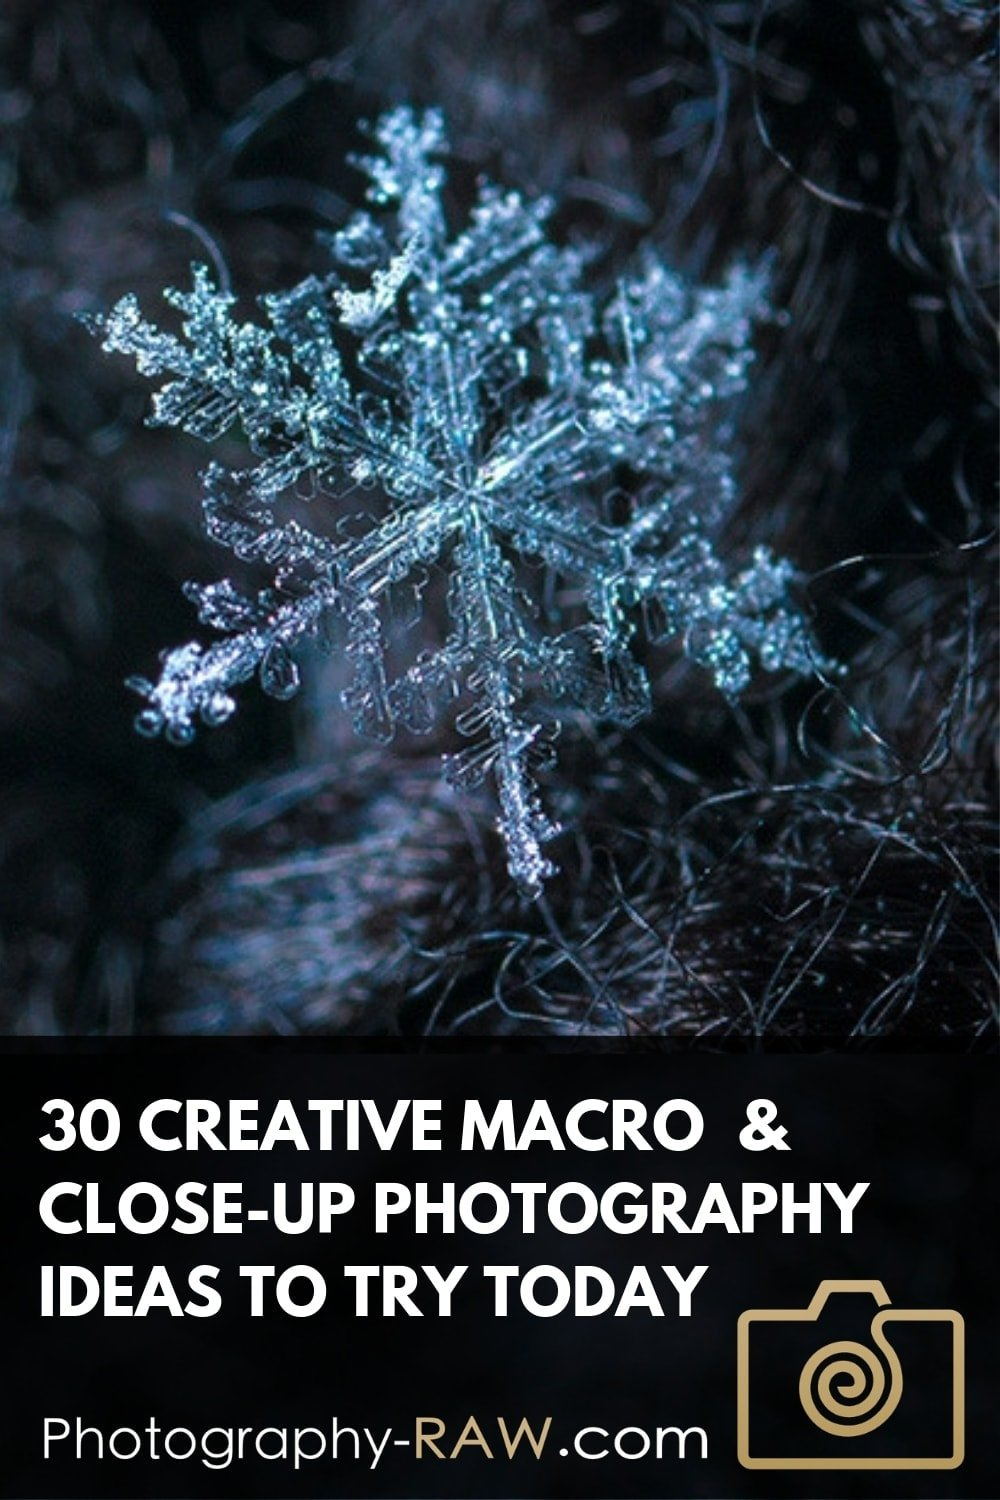 30 Creative Close-up and Macro Photography Ideas to Try Today